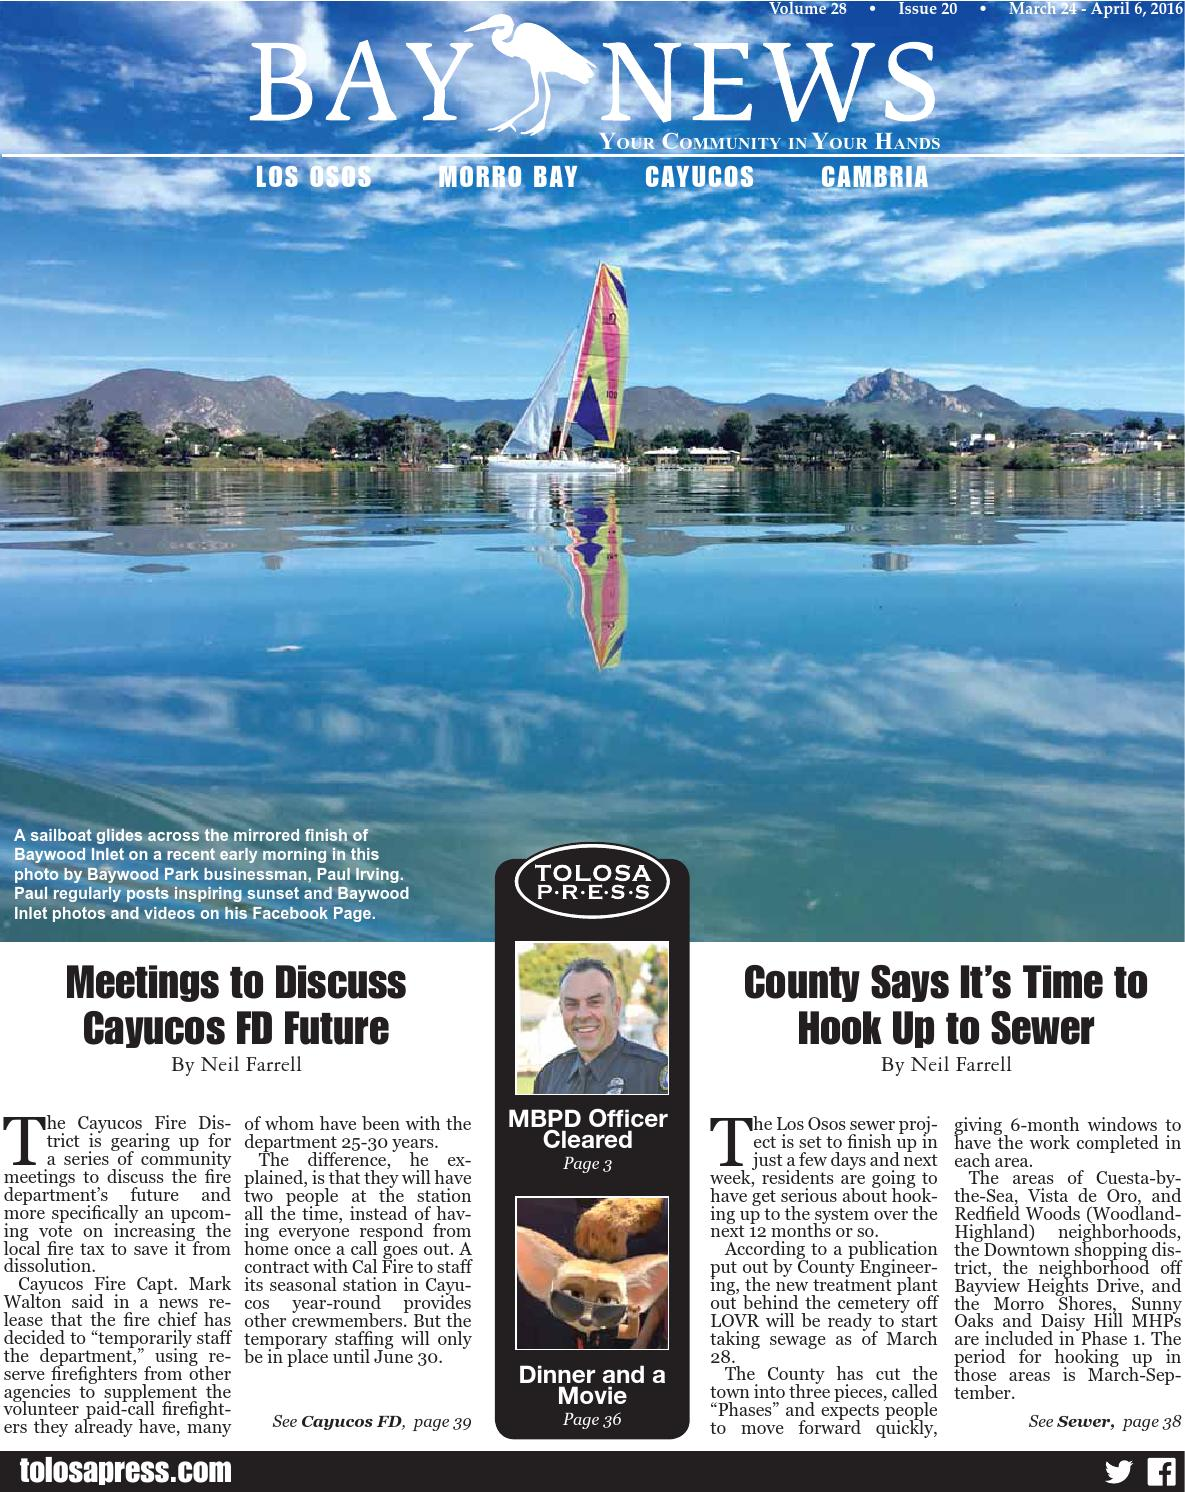 Bay News, March 24 - April 6, 2016 by Simply Clear Marketing, Inc ...